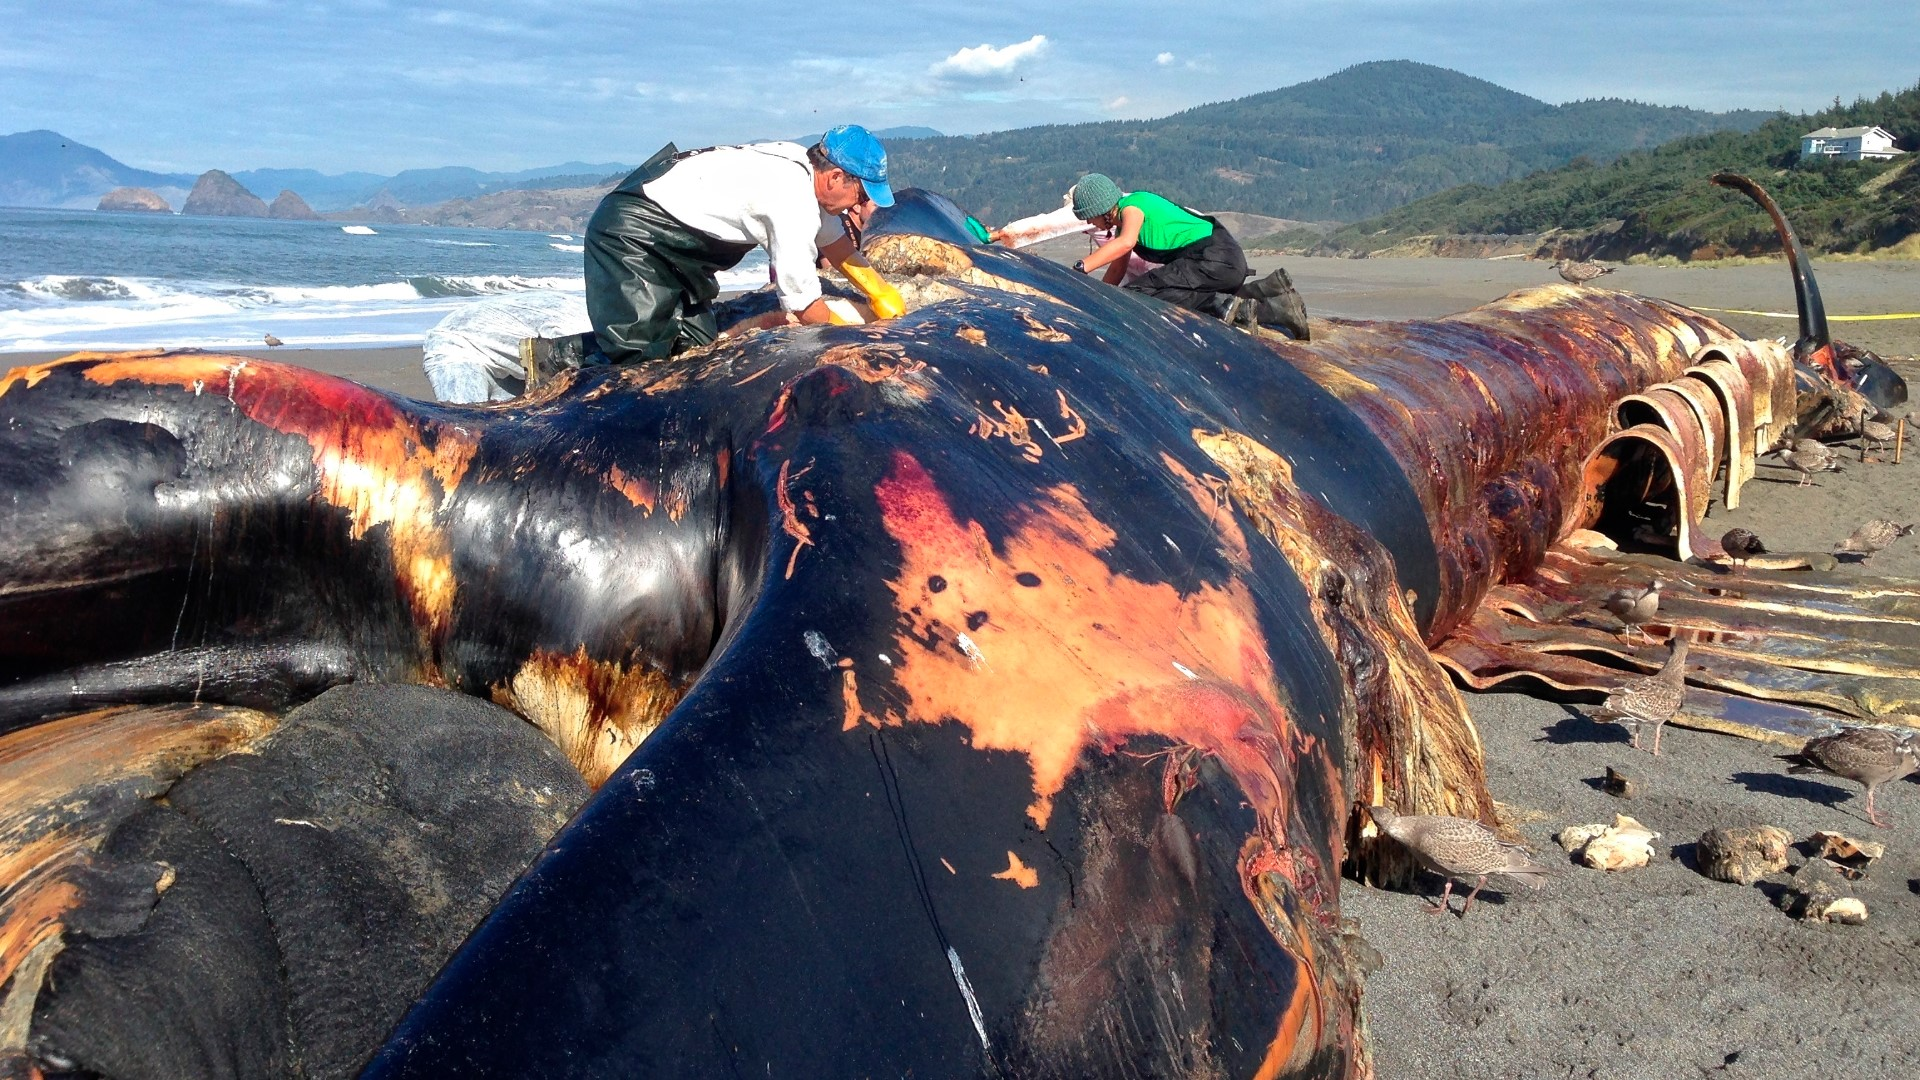 Scientists to study rare, intact blue whale carcass washed ...